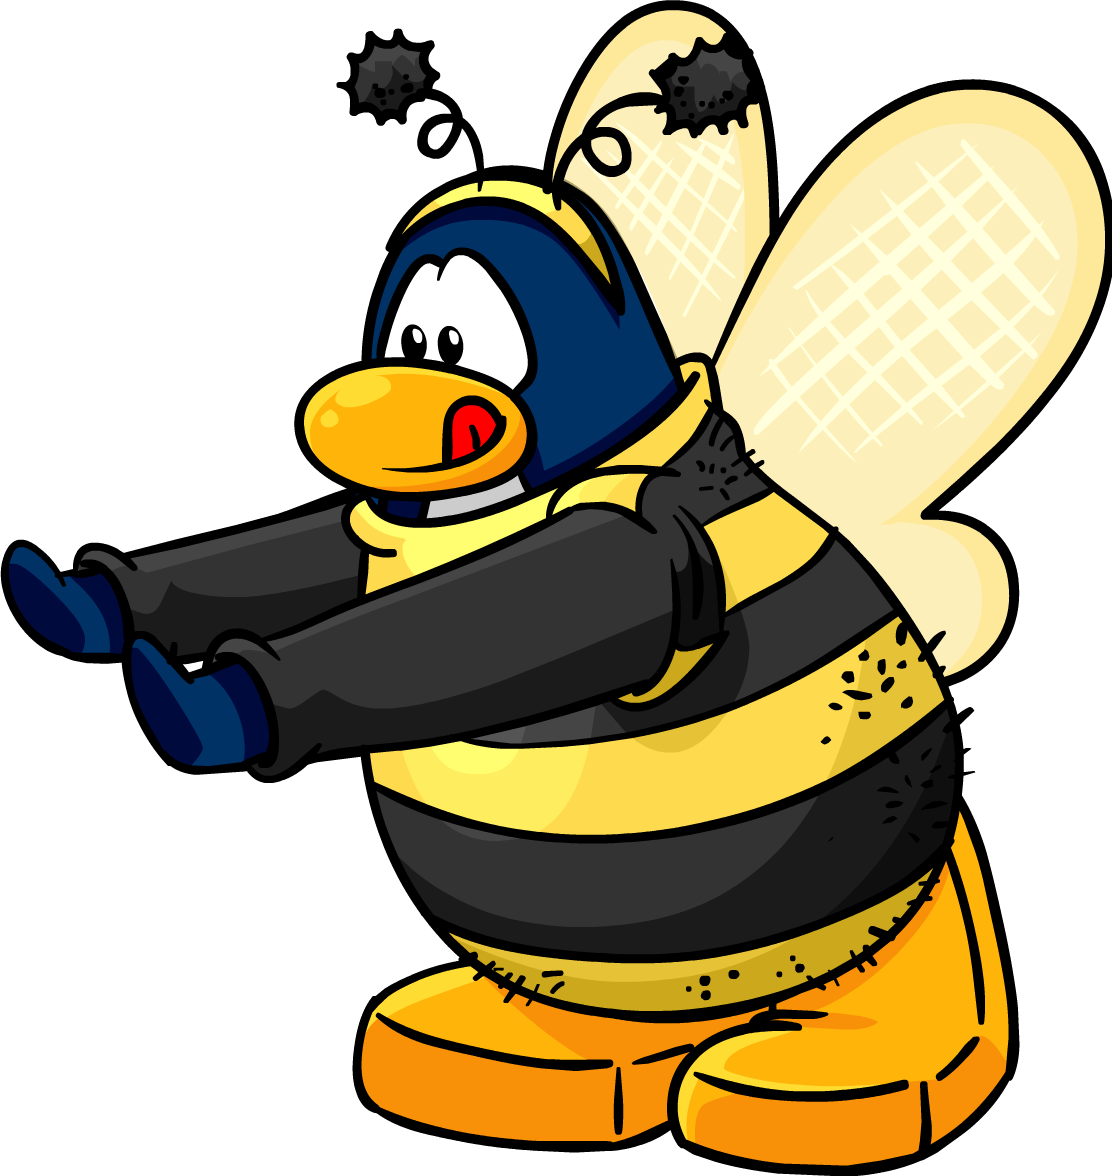 Fuzz the bee.png - Fuzz PNG